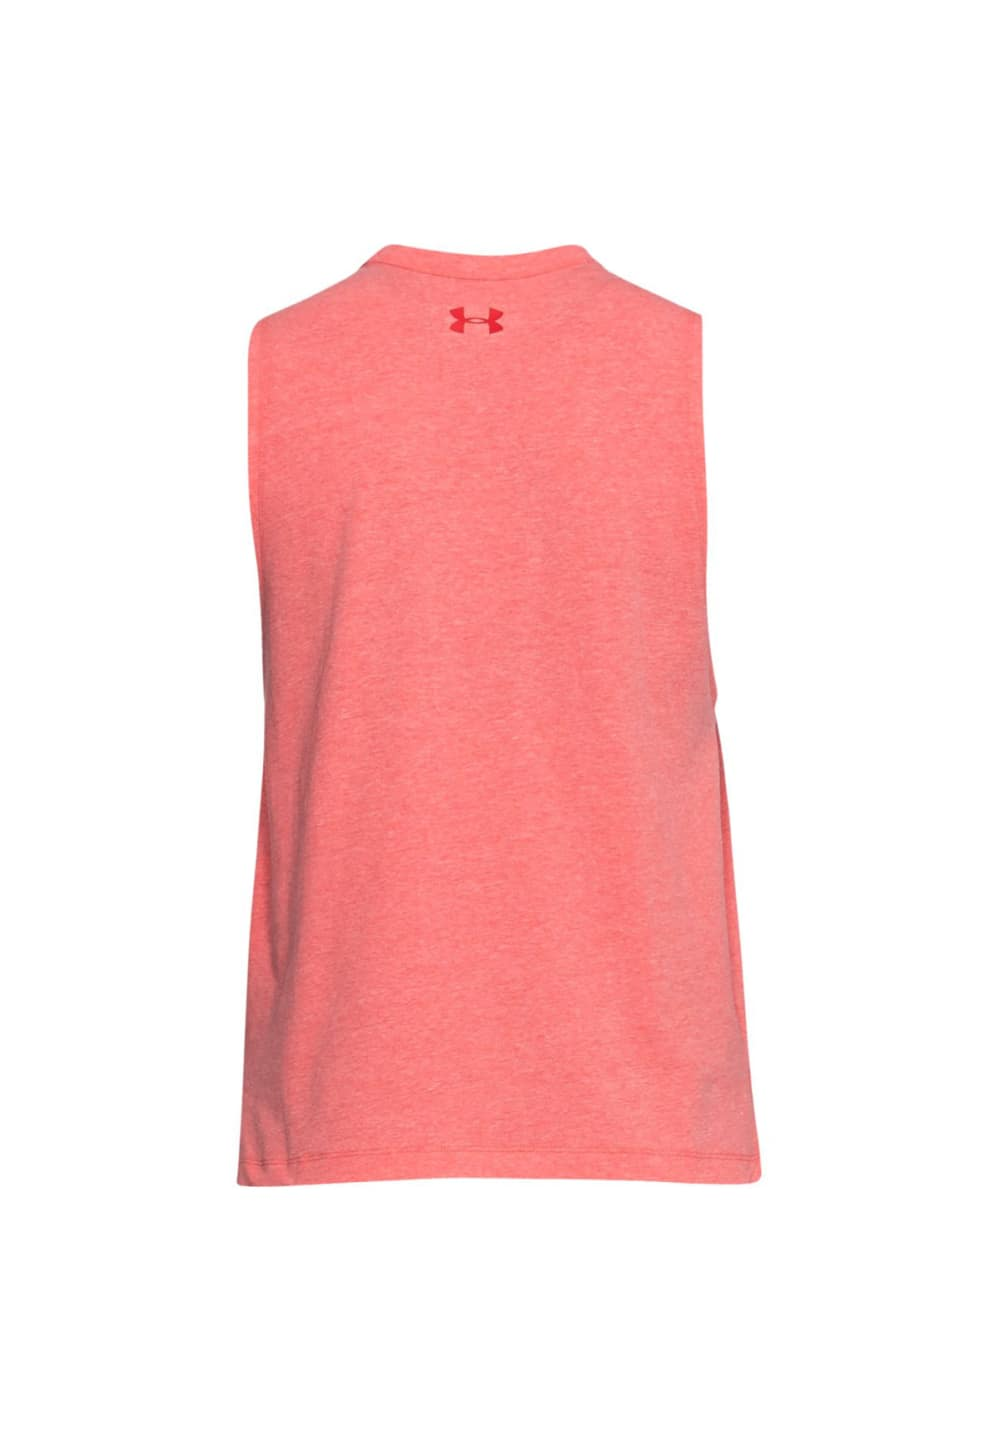 f900f86d Next. Under Armour. Muscle Tank Overlay Logo - Running tops for Women